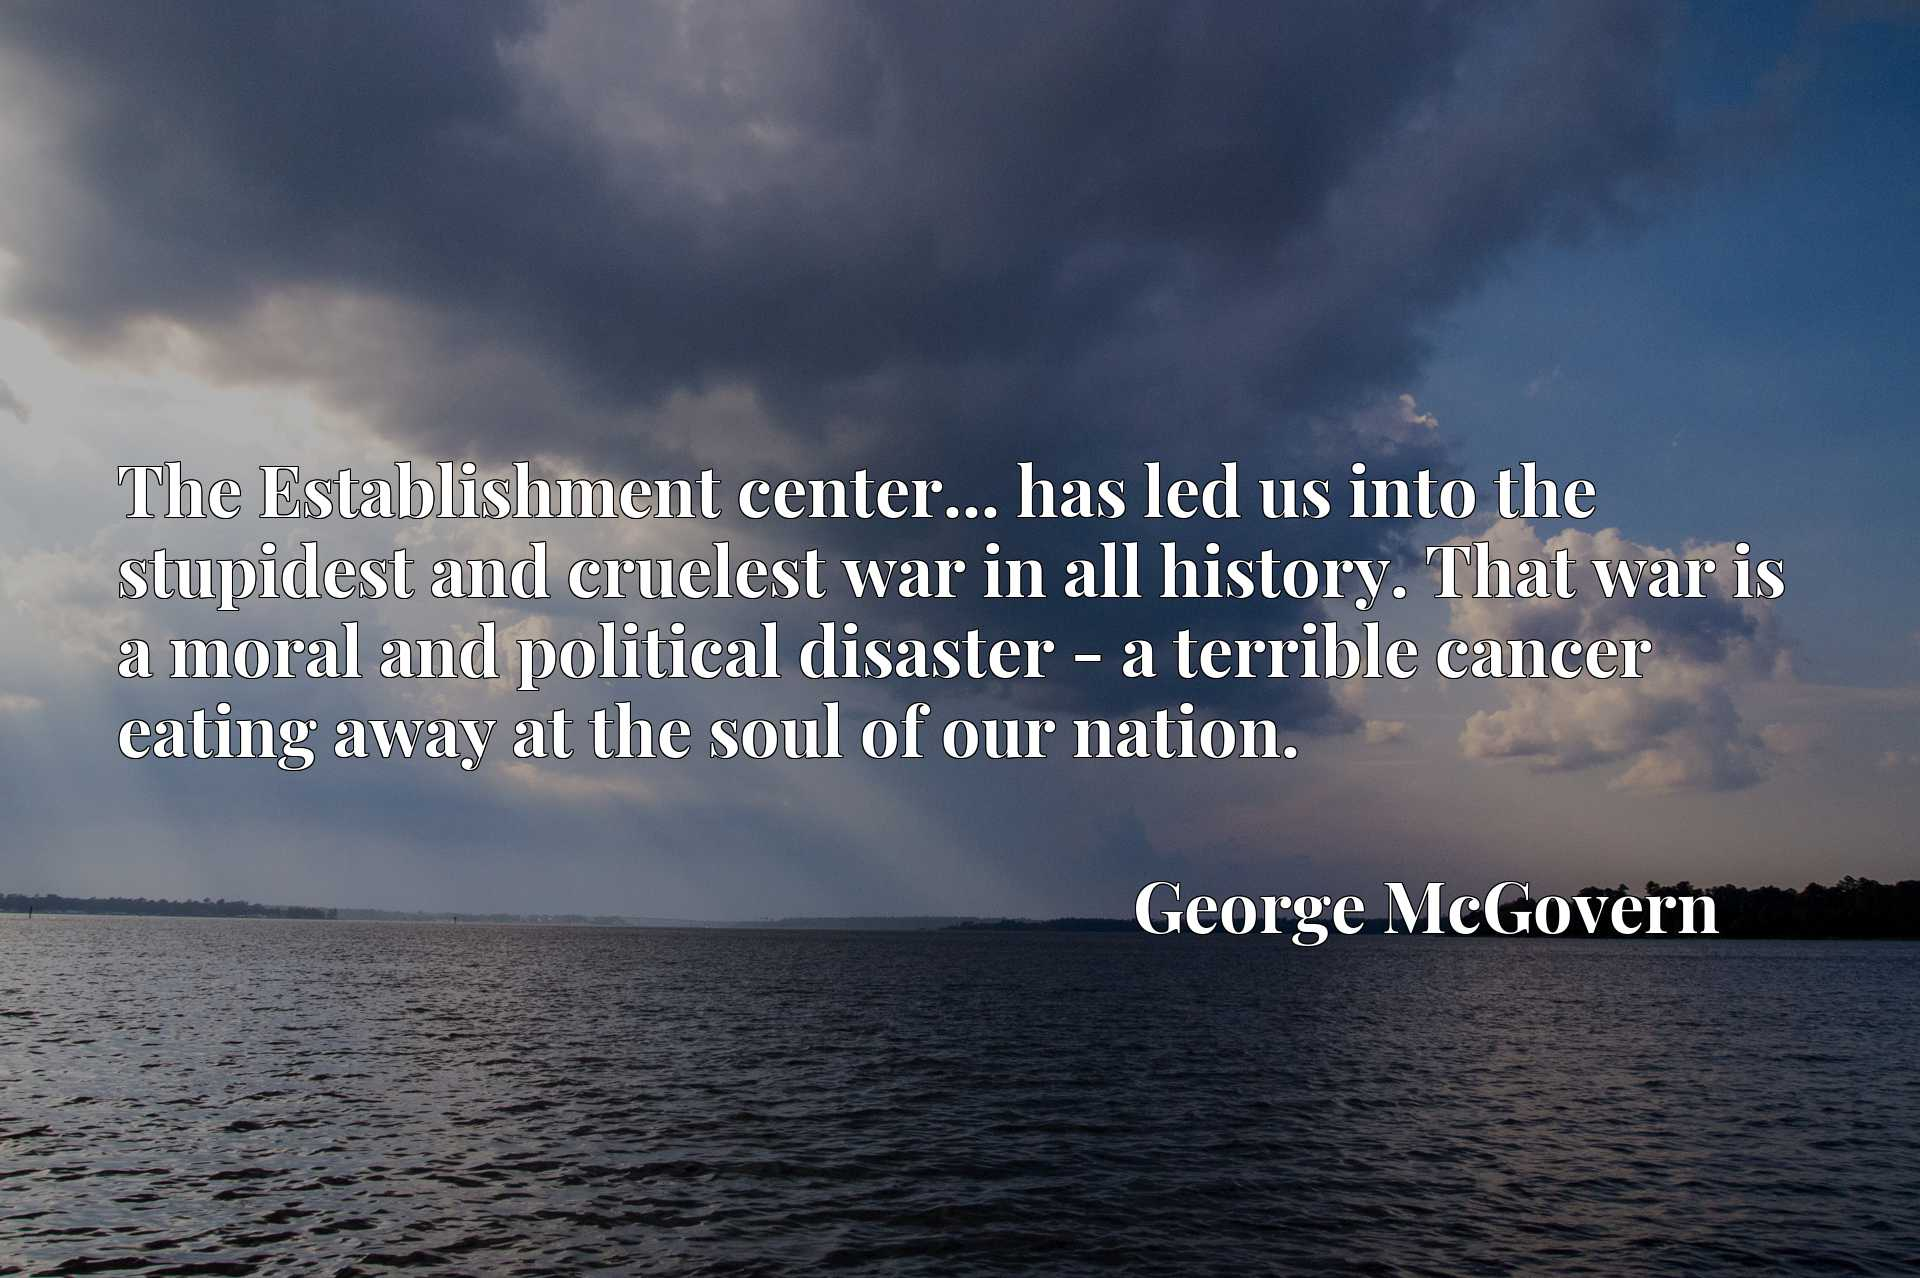 The Establishment center... has led us into the stupidest and cruelest war in all history. That war is a moral and political disaster - a terrible cancer eating away at the soul of our nation.